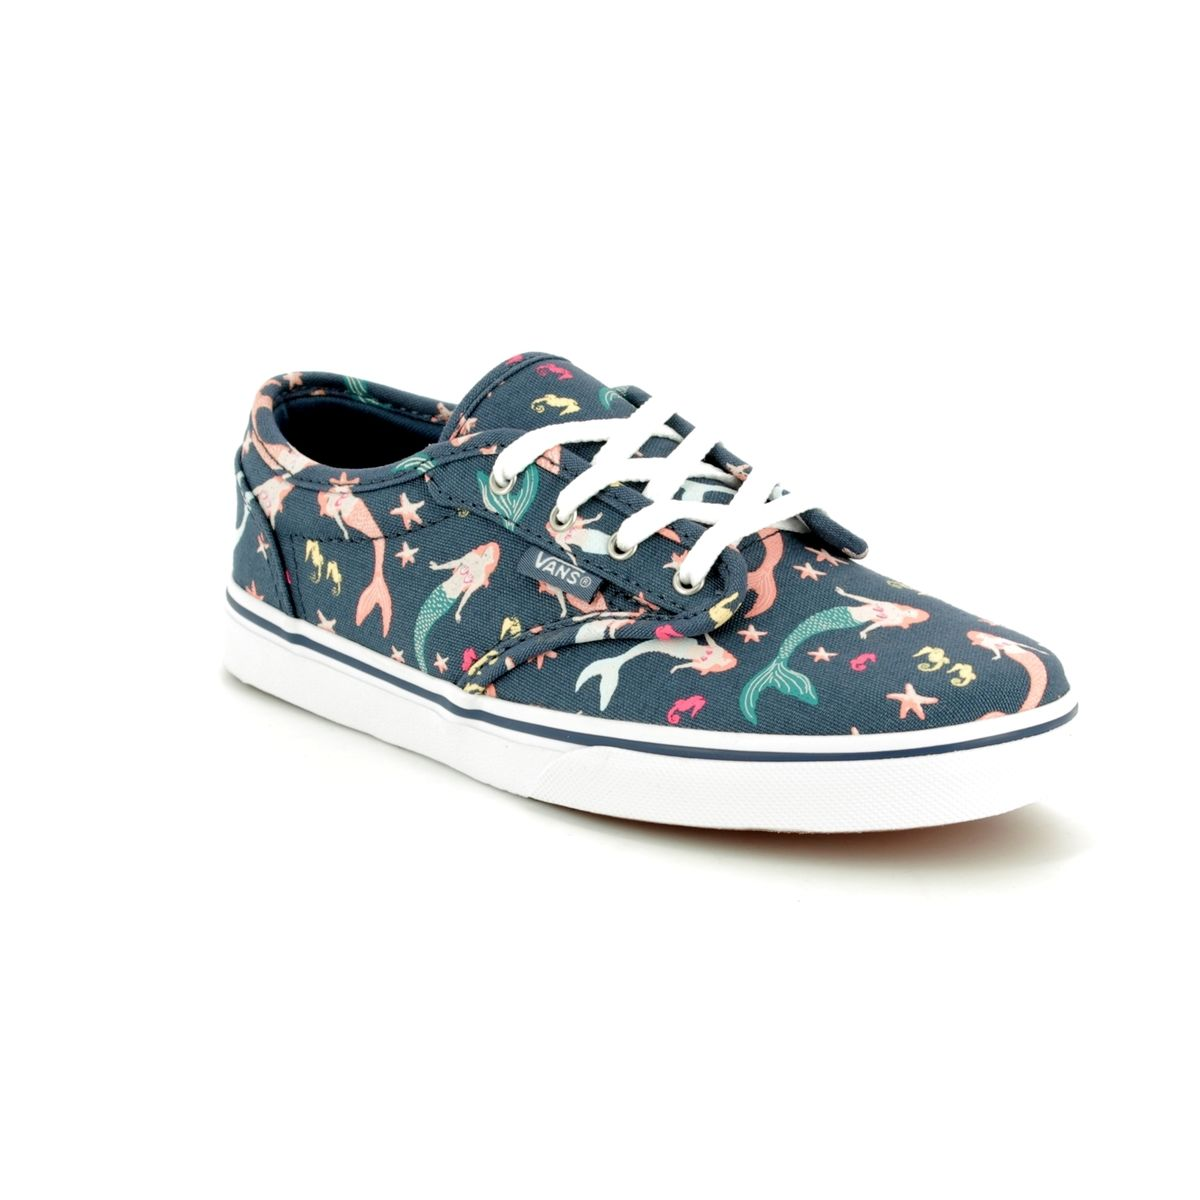 vans raven aruba atwood womens low top shoe nz